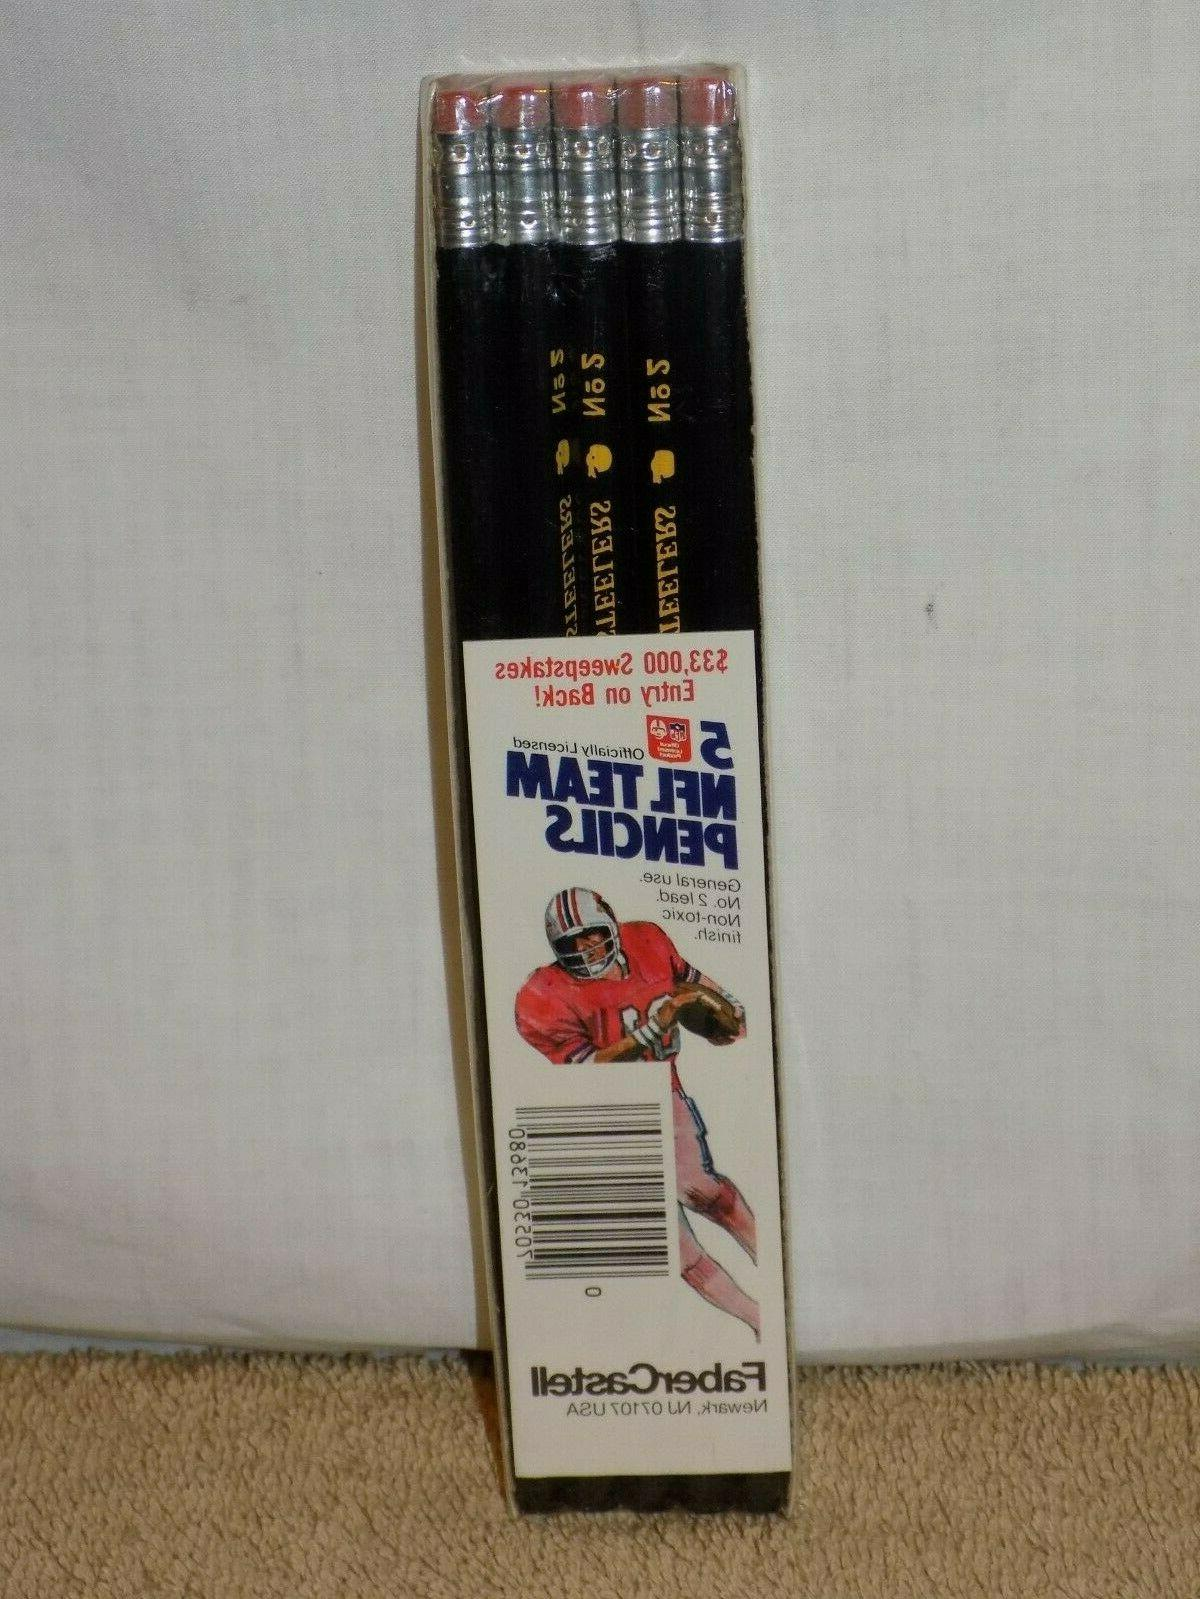 pittsburg steelers nfl football faber castell 5